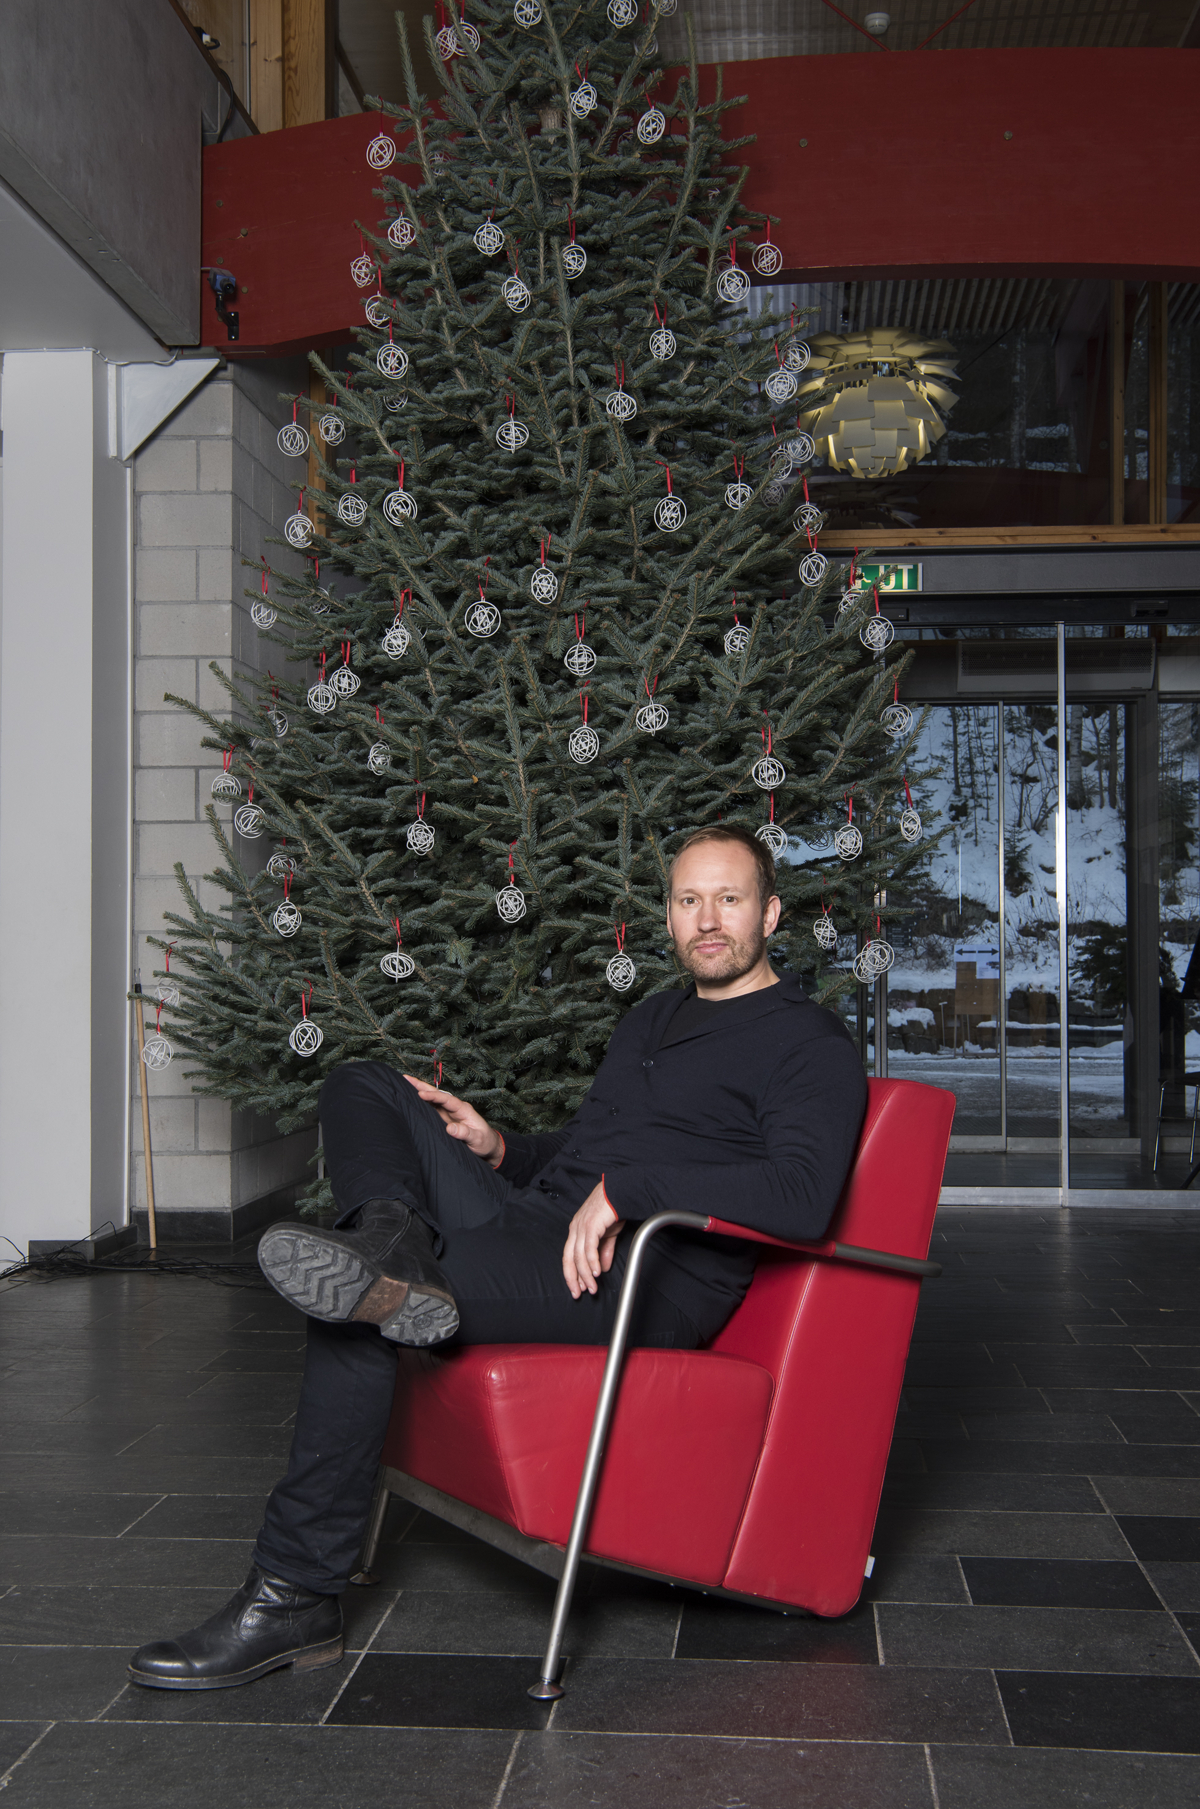 Torbjørn Anderssen sitting in front of a Christmas tree decorated with white ornaments.